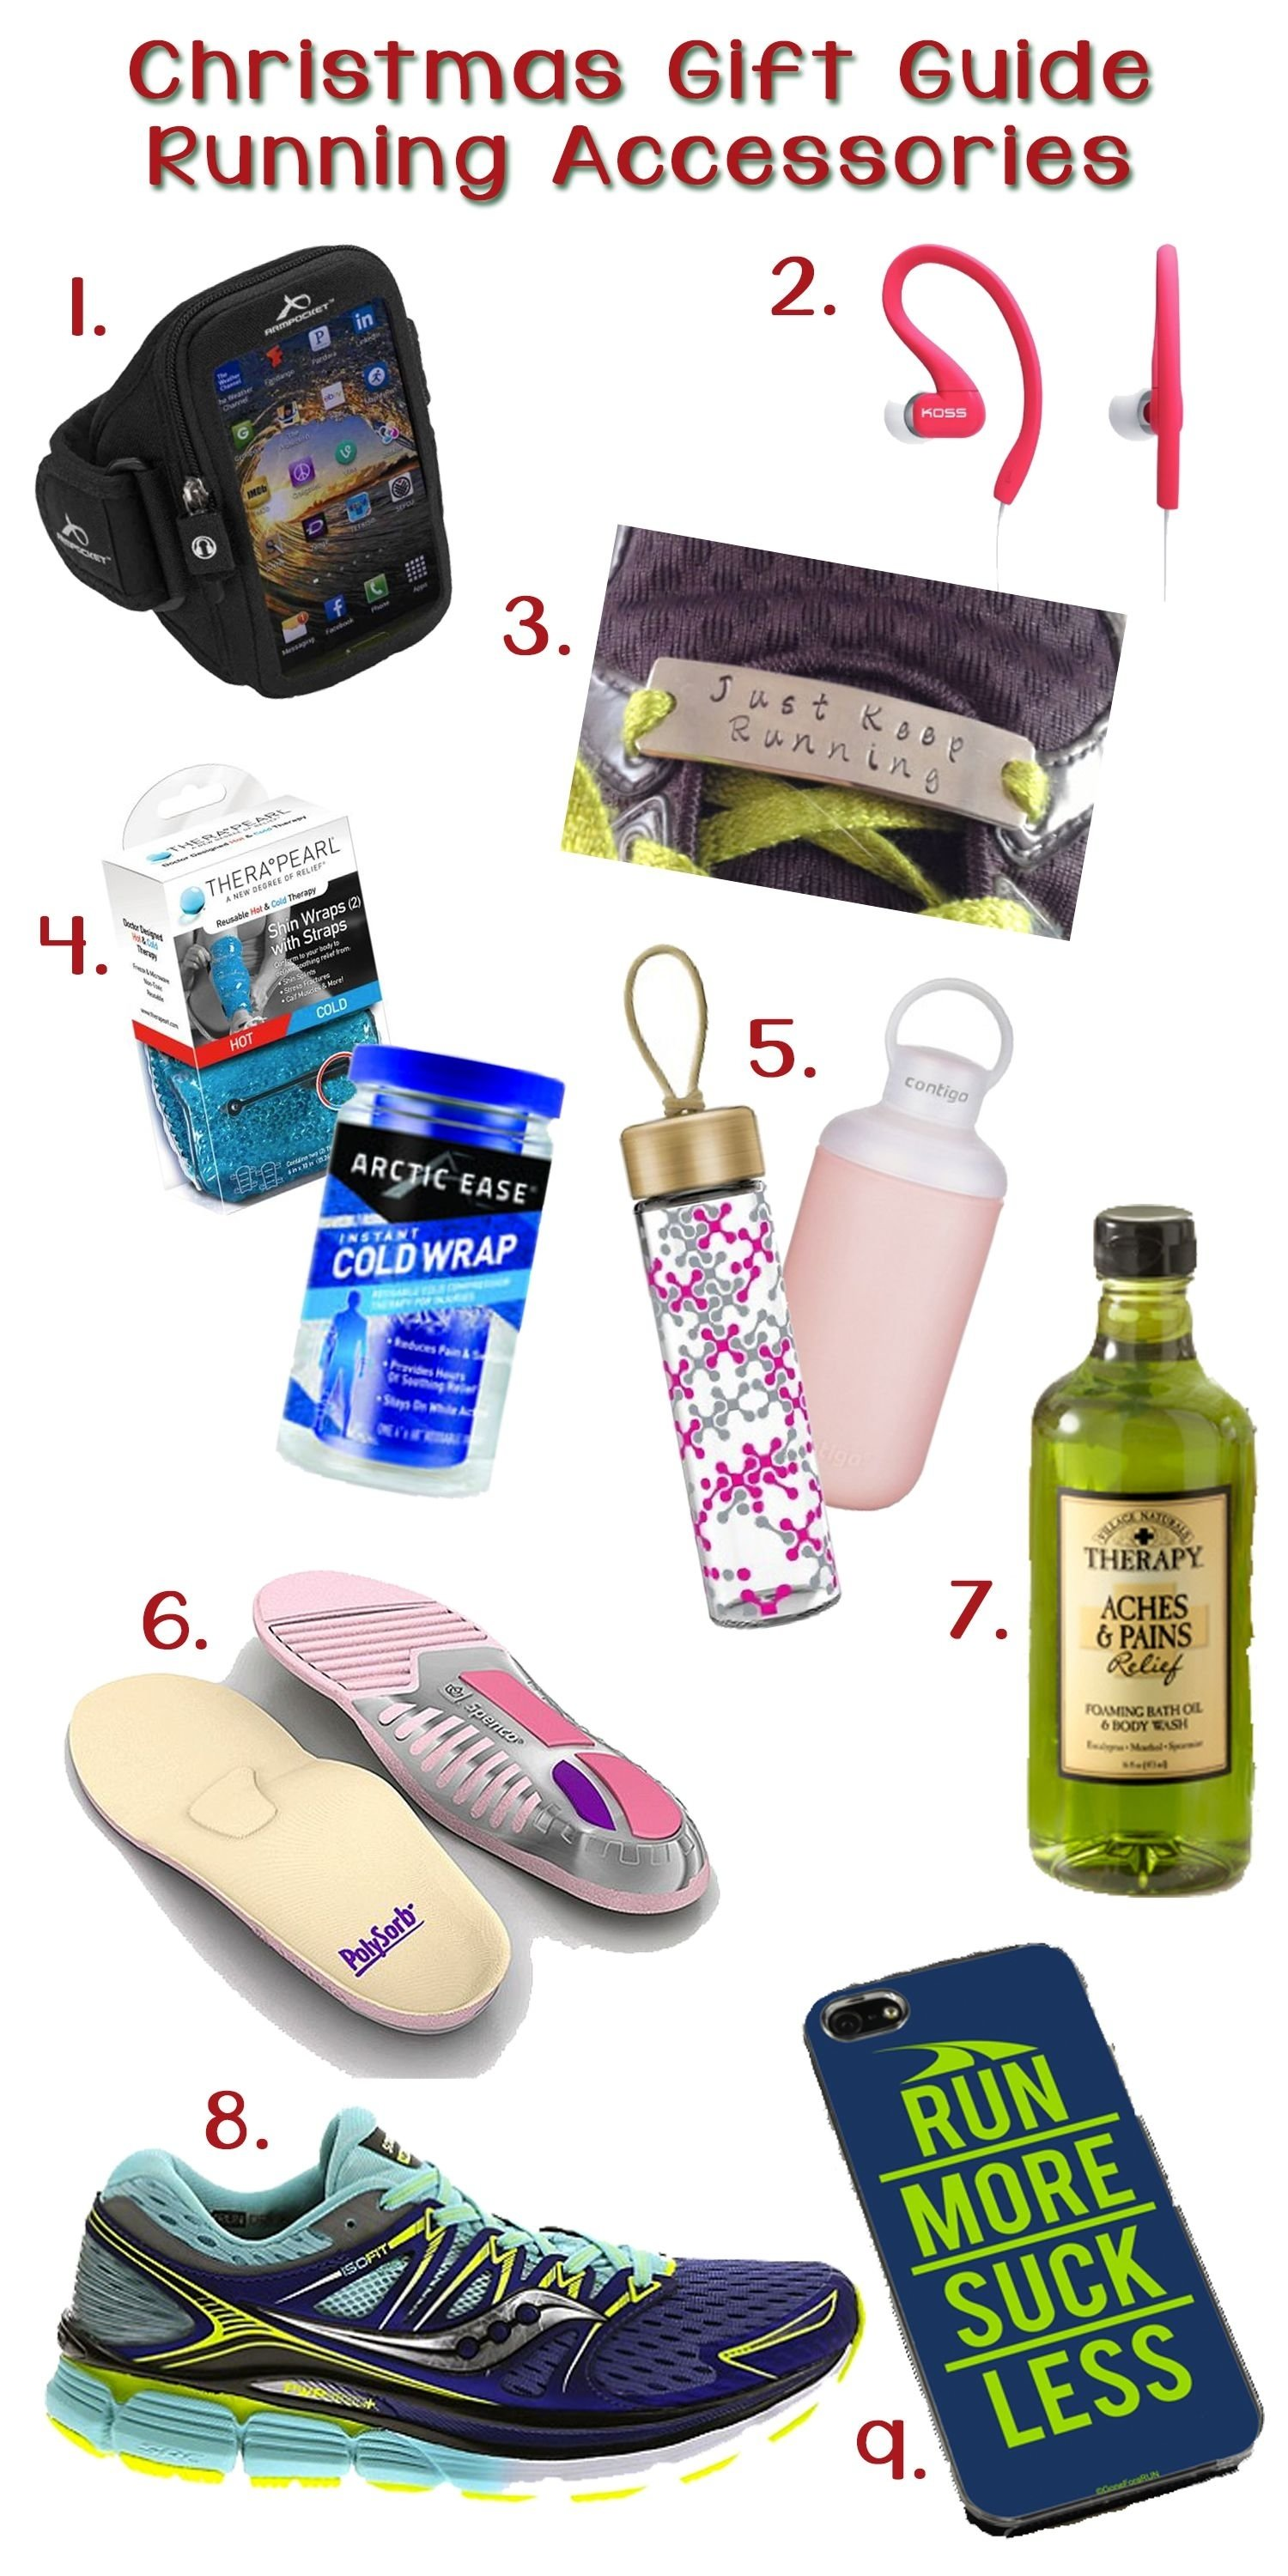 10 Most Popular Gift Ideas For A Runner the christmas gift guide for running accessories any of these gifts